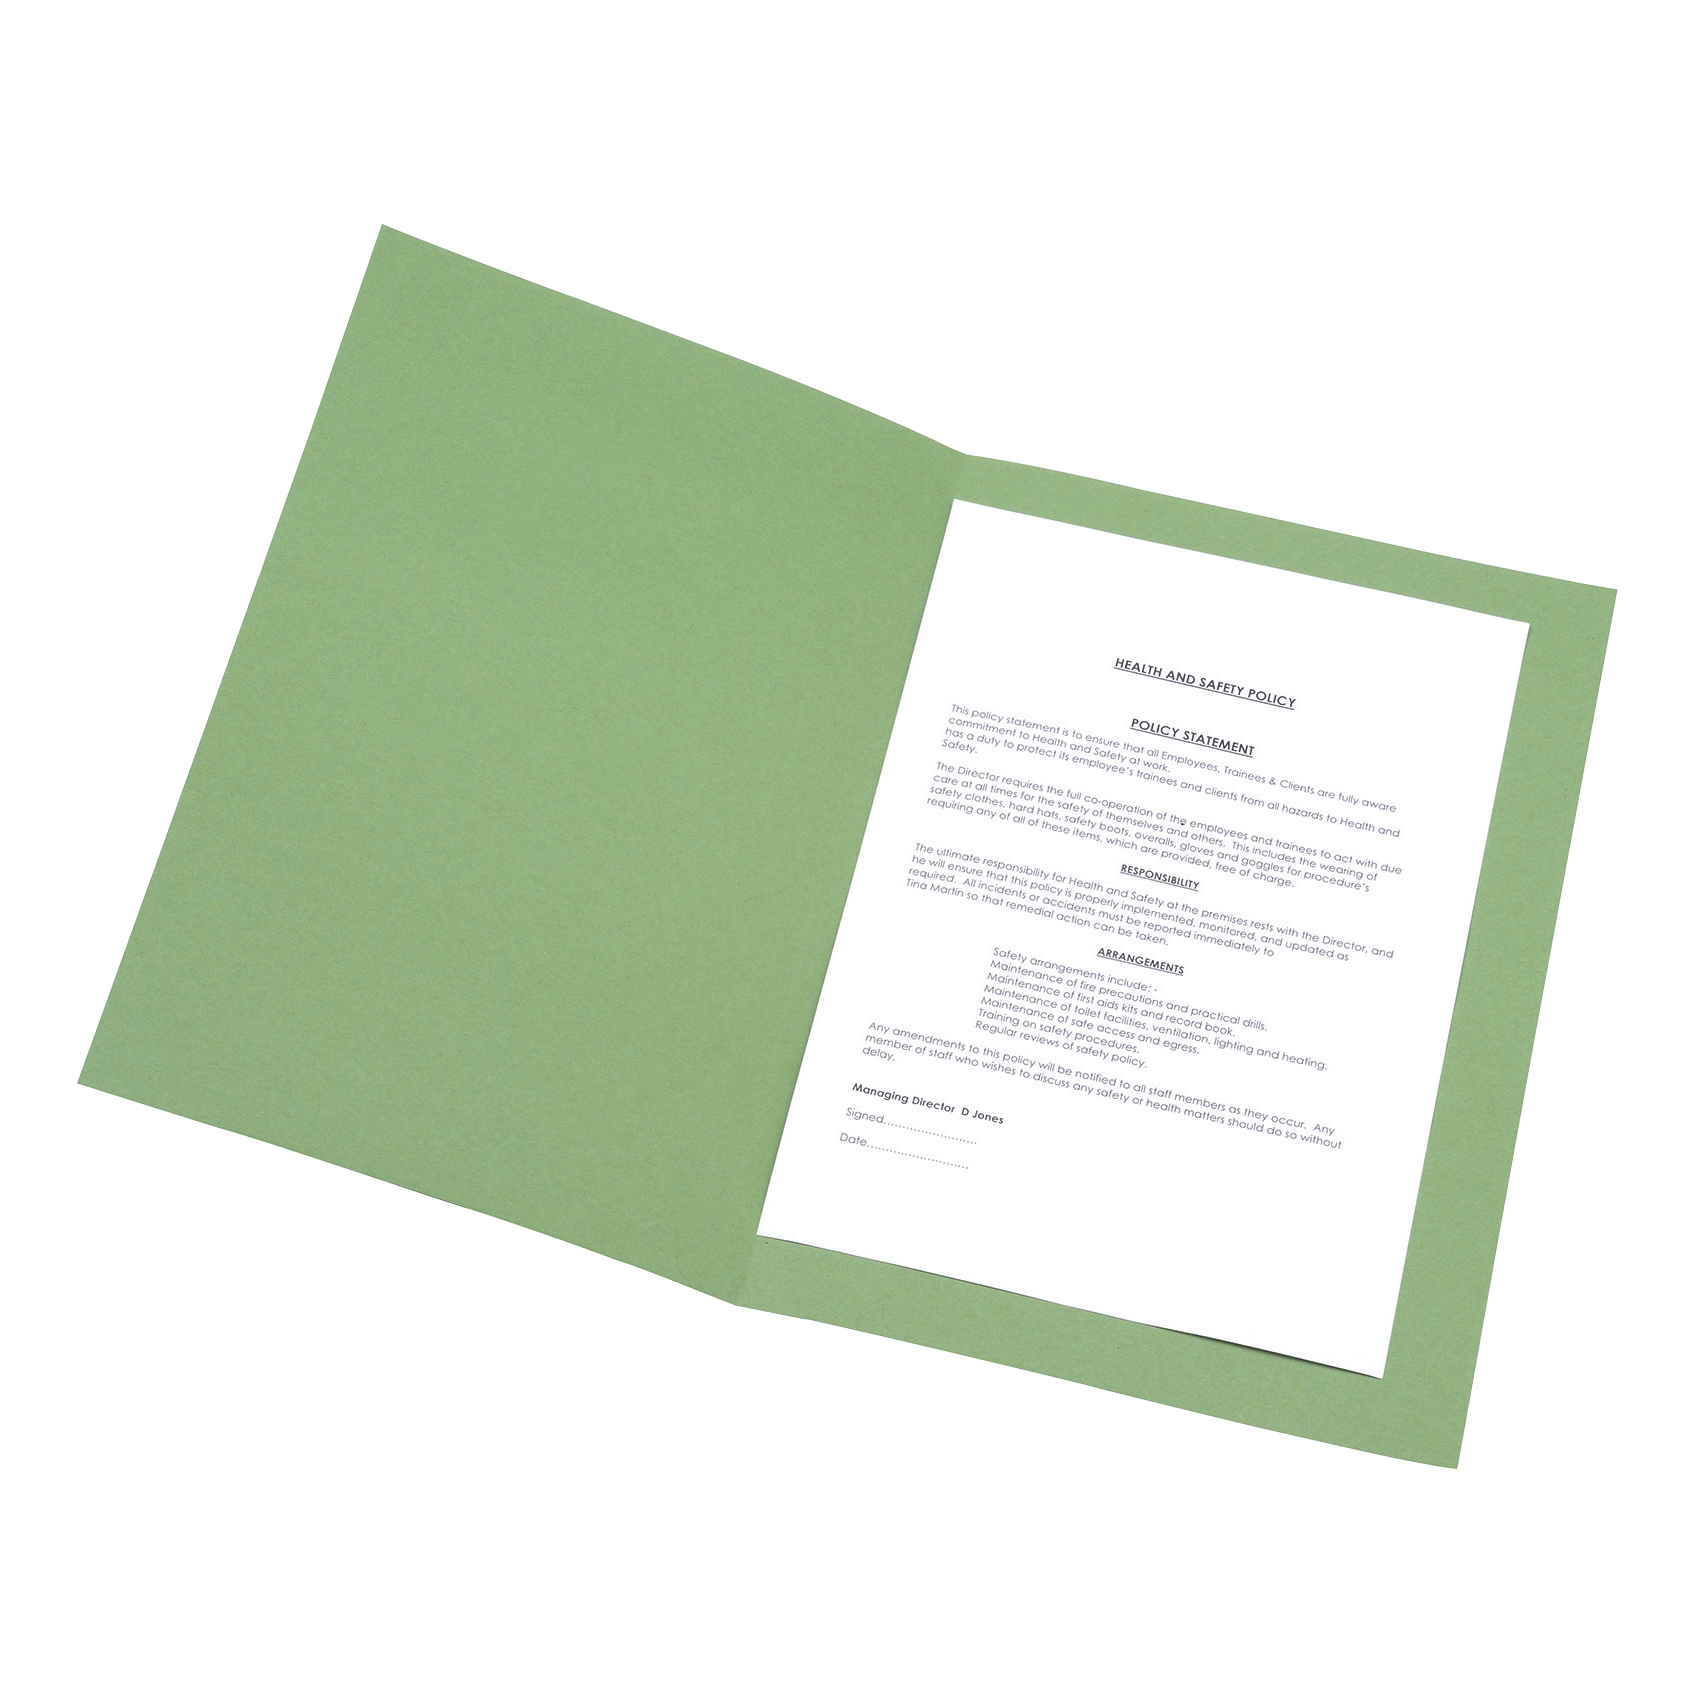 5 Star Office Square Cut Folder Recycled 250gsm Foolscap Green [Pack 100]